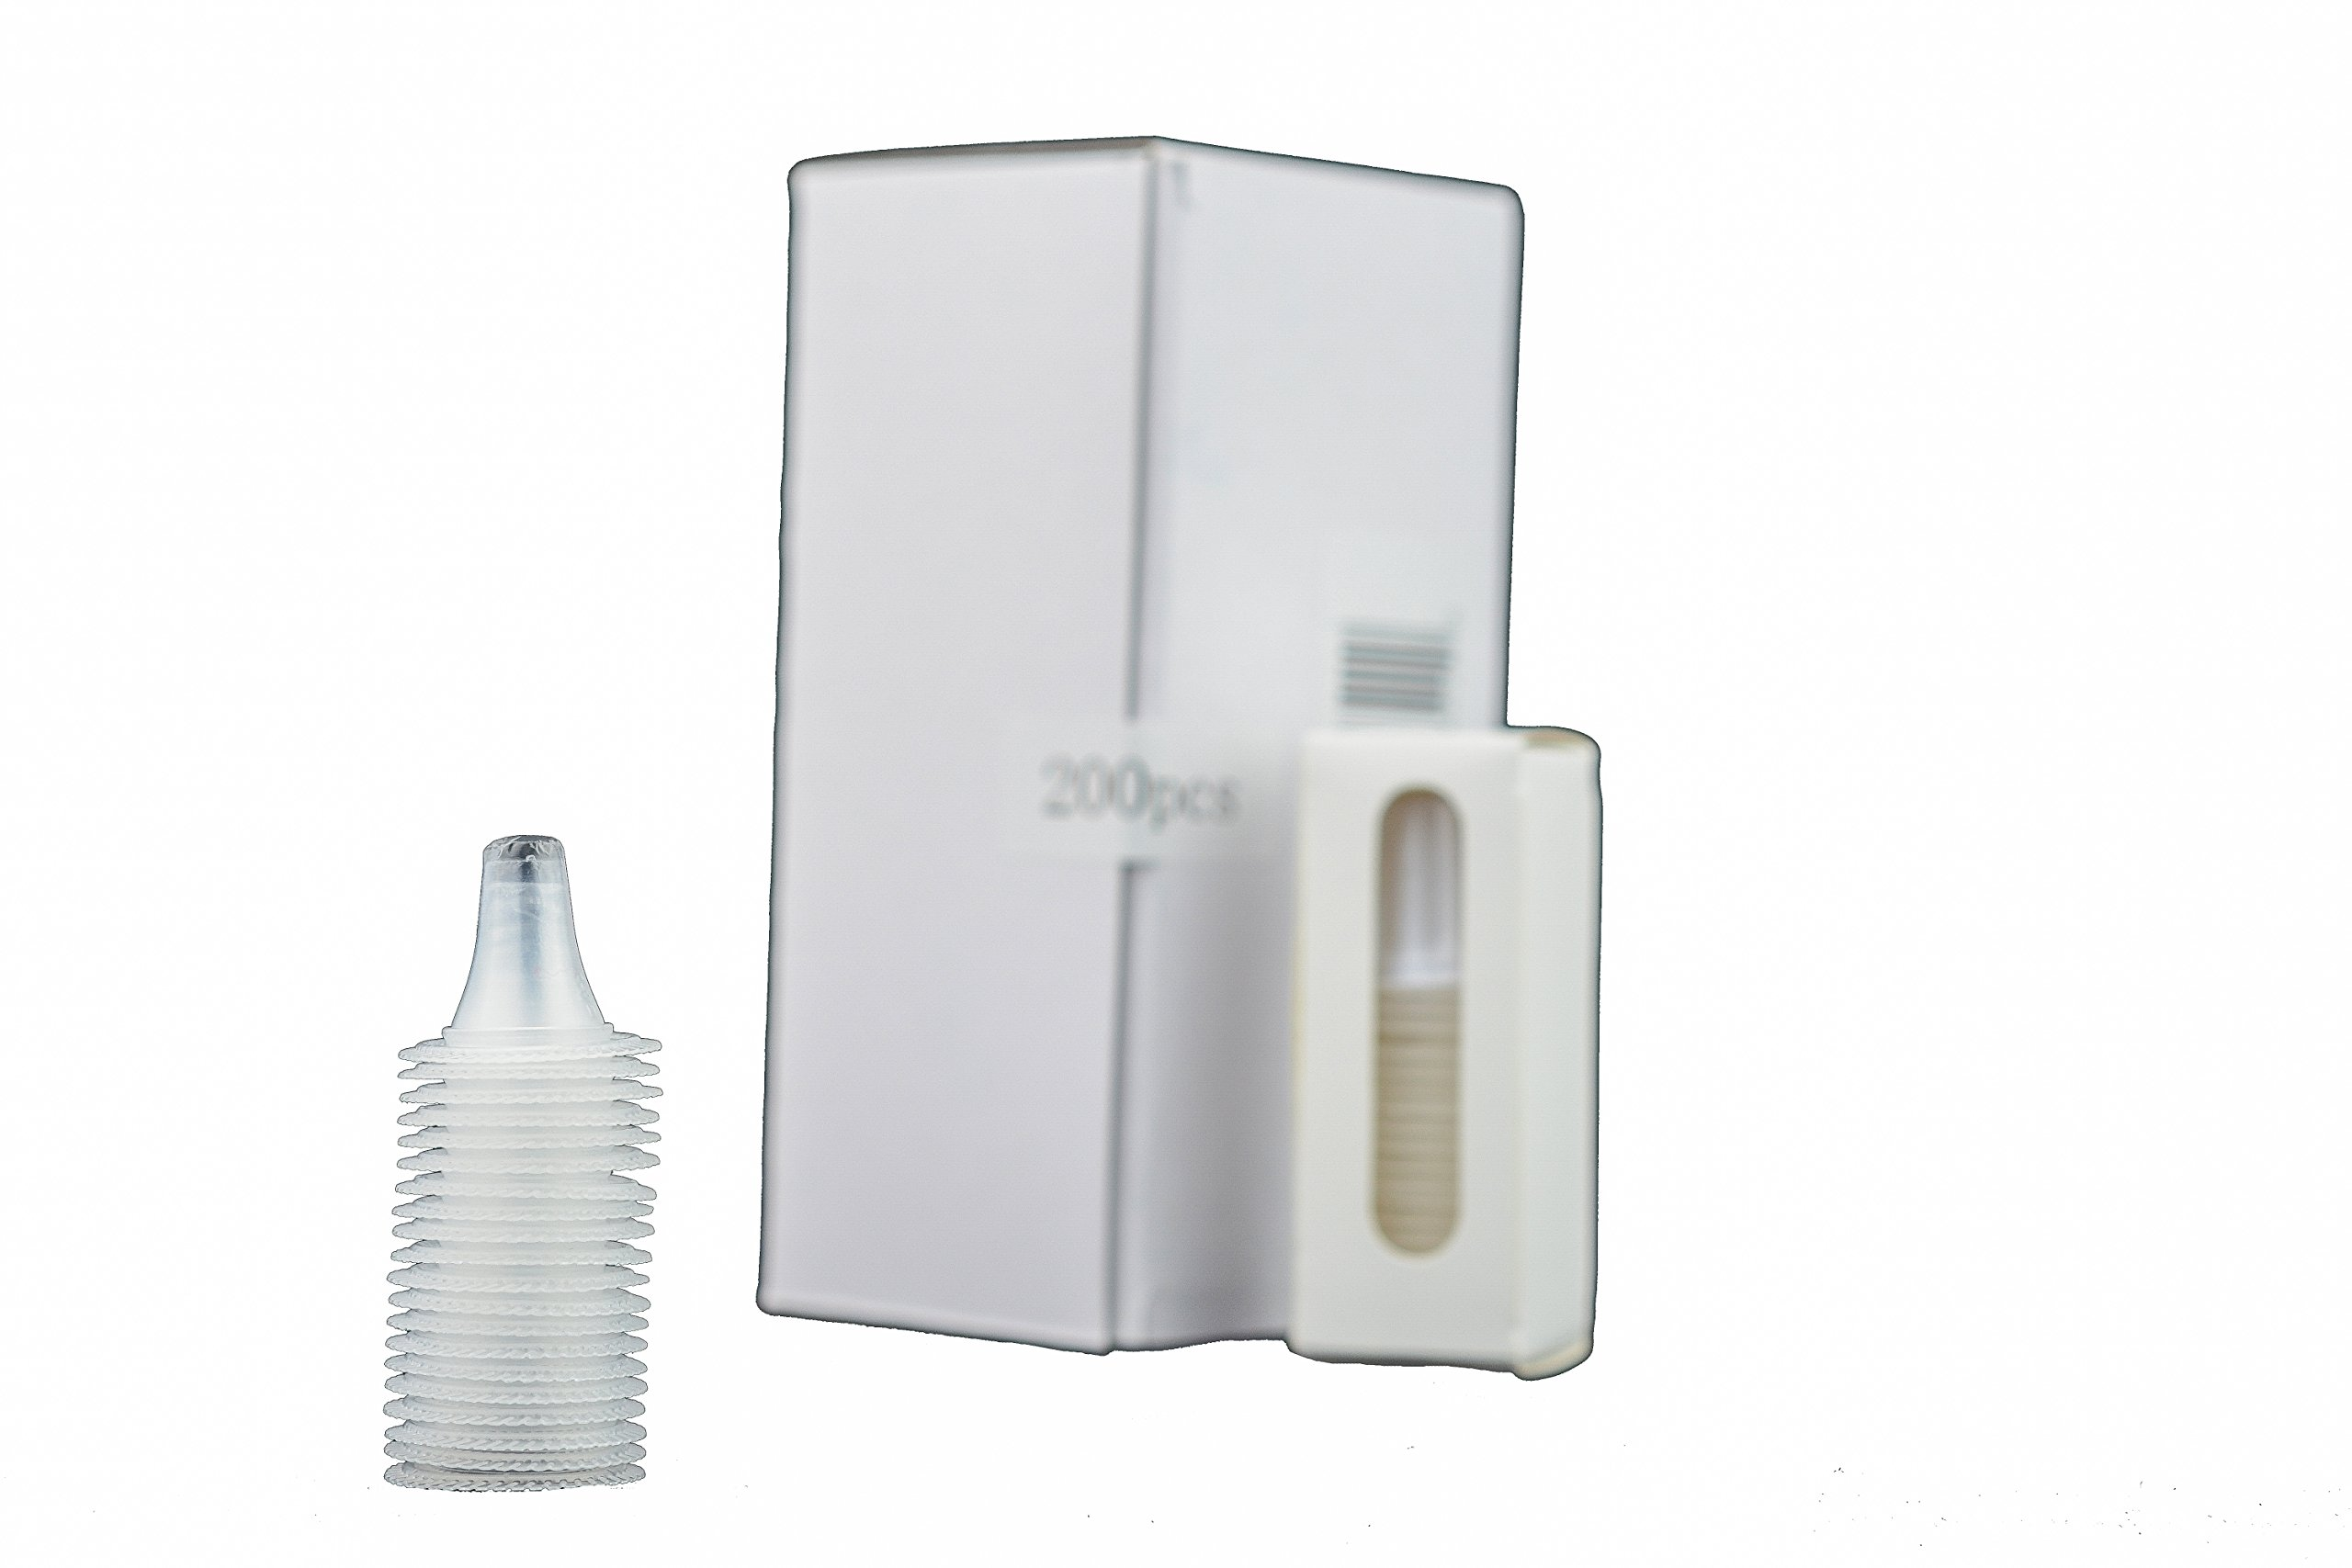 Braun Ear Thermometer DISPOSABLE PROBE COVERS _ Box of 20 000 Lens Filters (Made of closed-cell foam that is laminated with a sheet of high density polyethylene plastic film). P&P Medical Surgical LLC